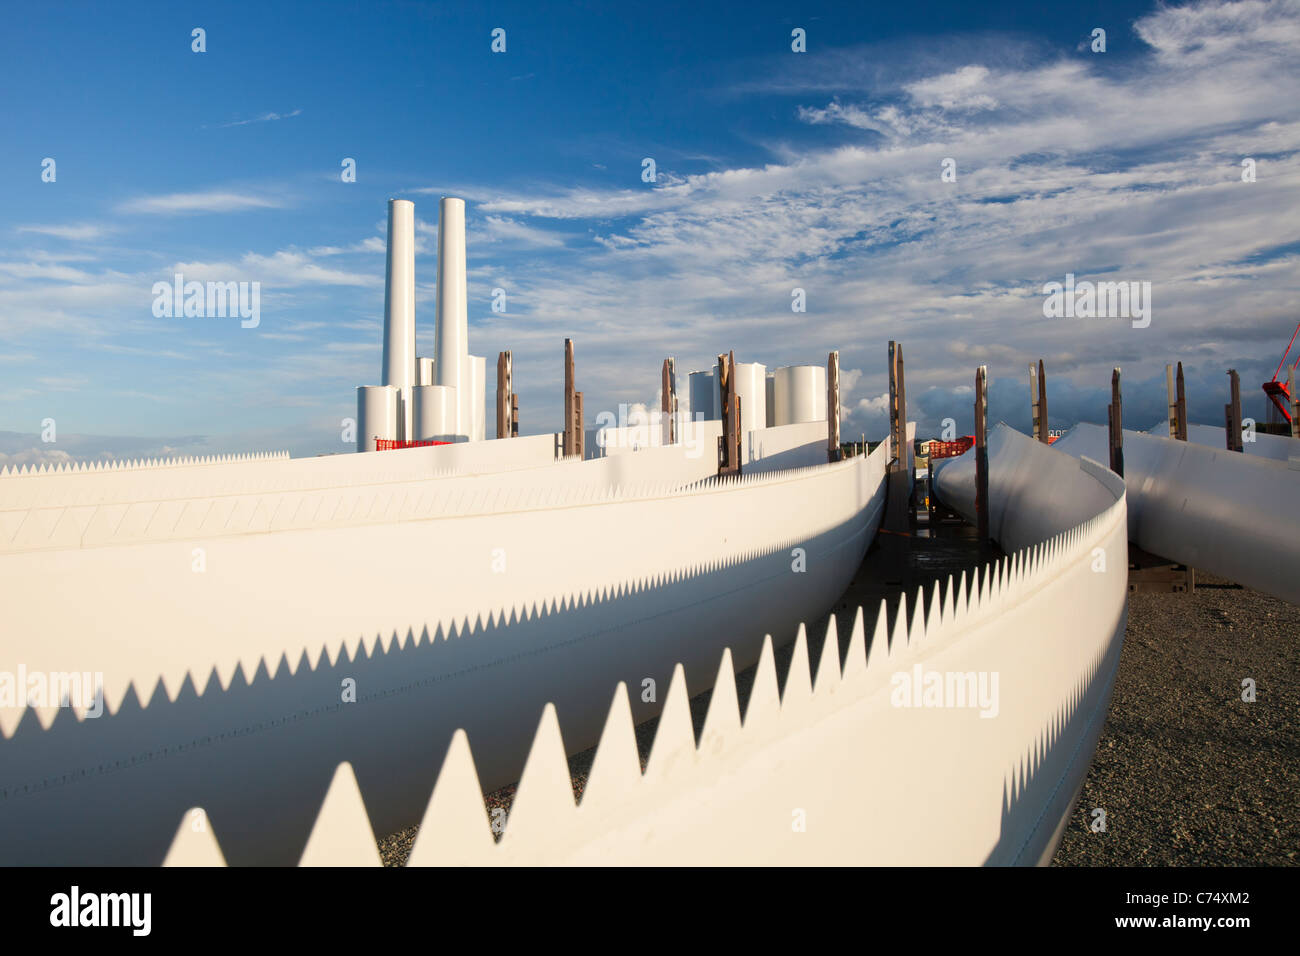 wind turbine blades with serrated teeth to increase efficiency on the docks at Mostyn, bound for the Walney offshore - Stock Image